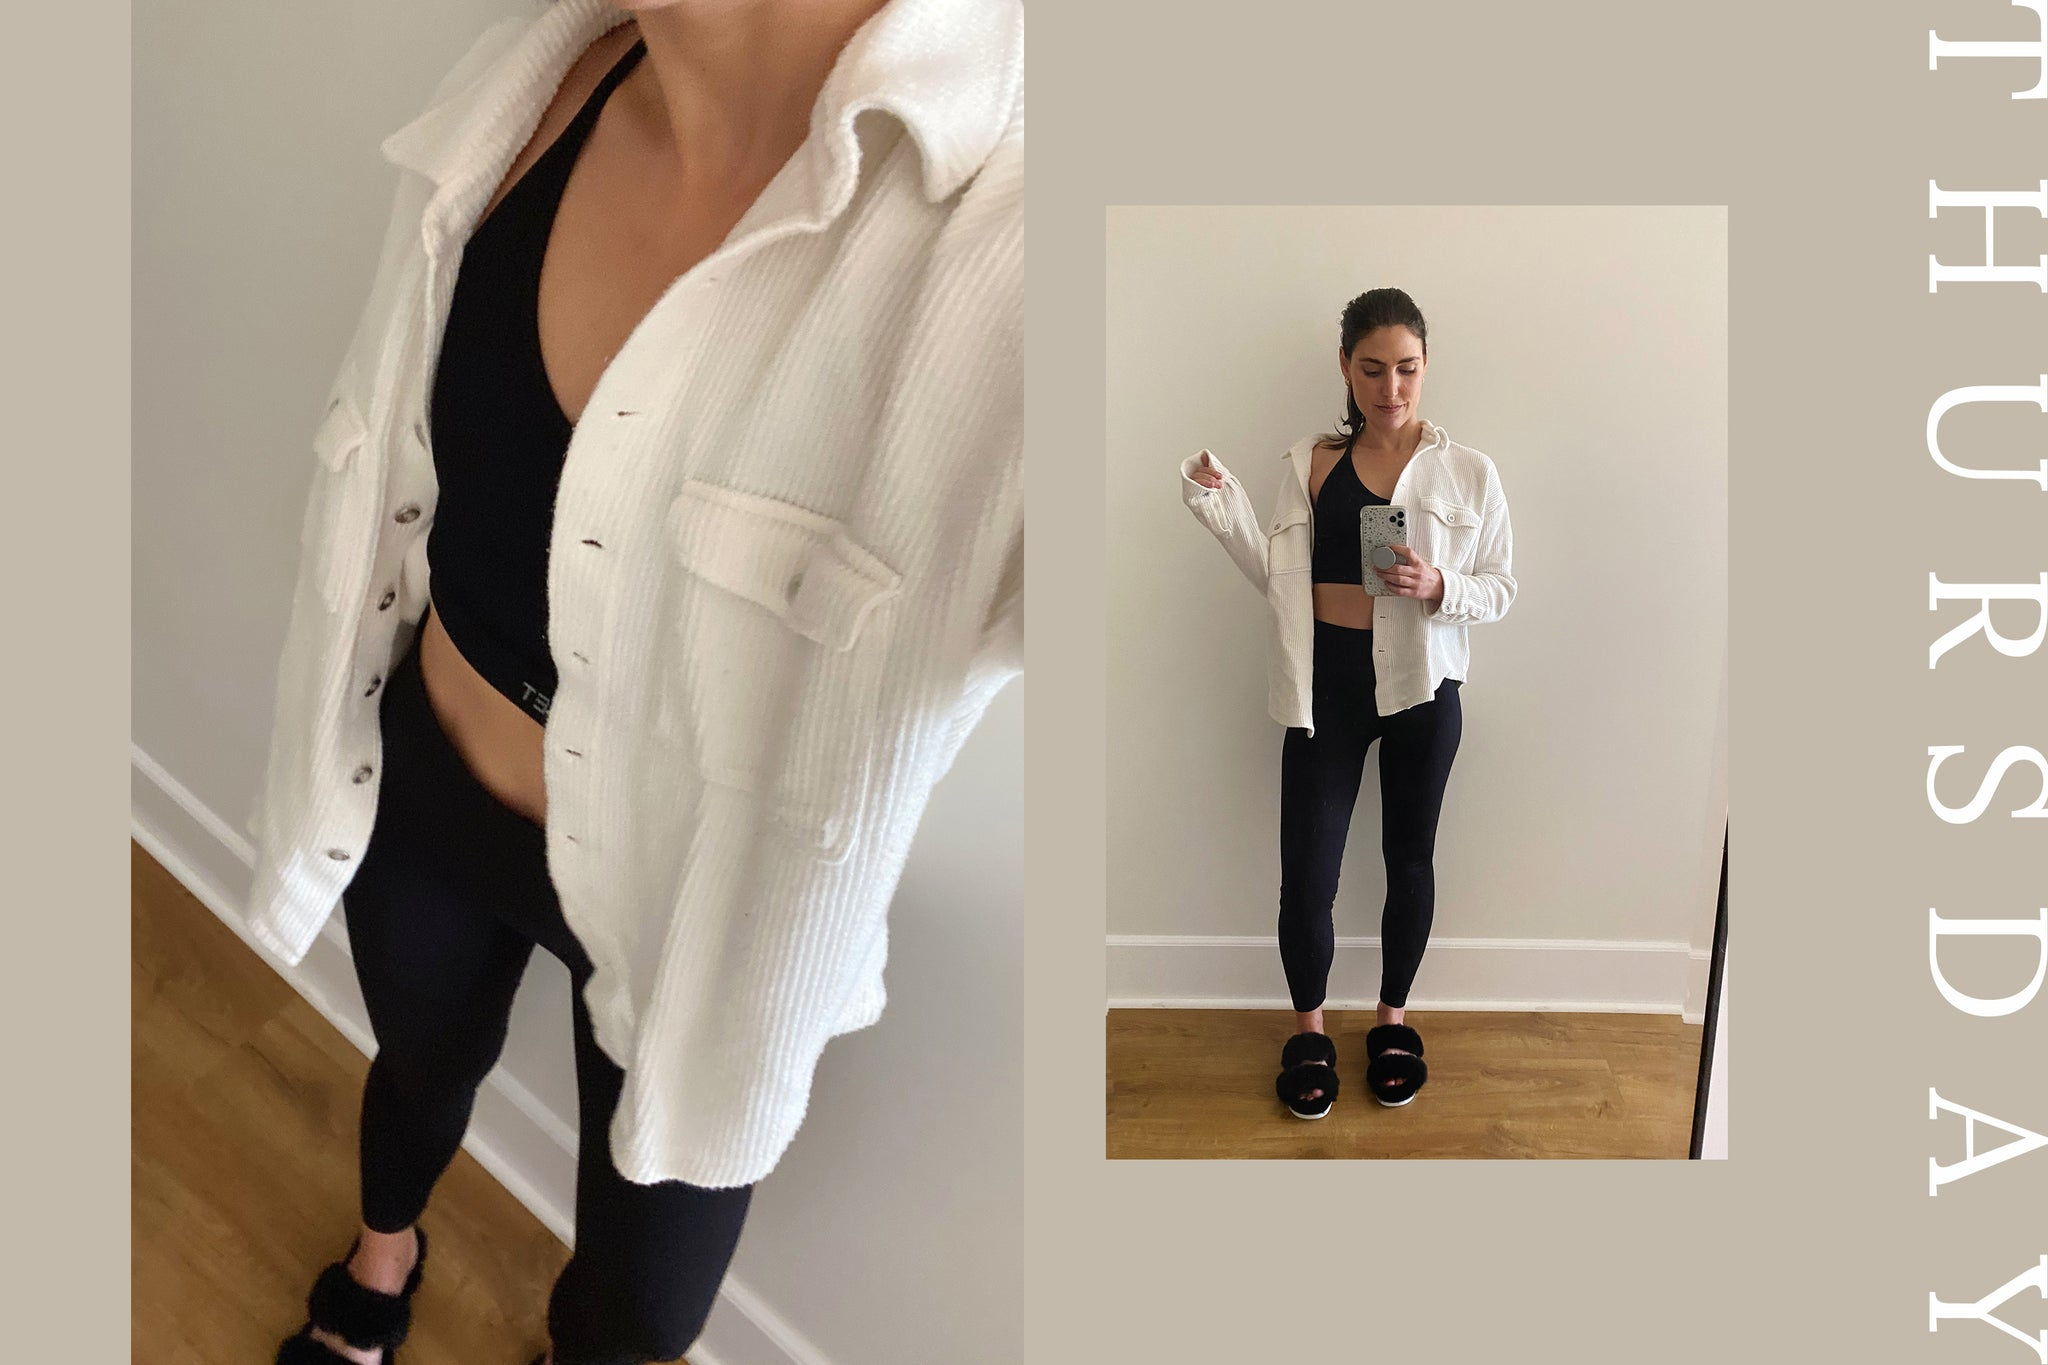 woman wearing workout clothes